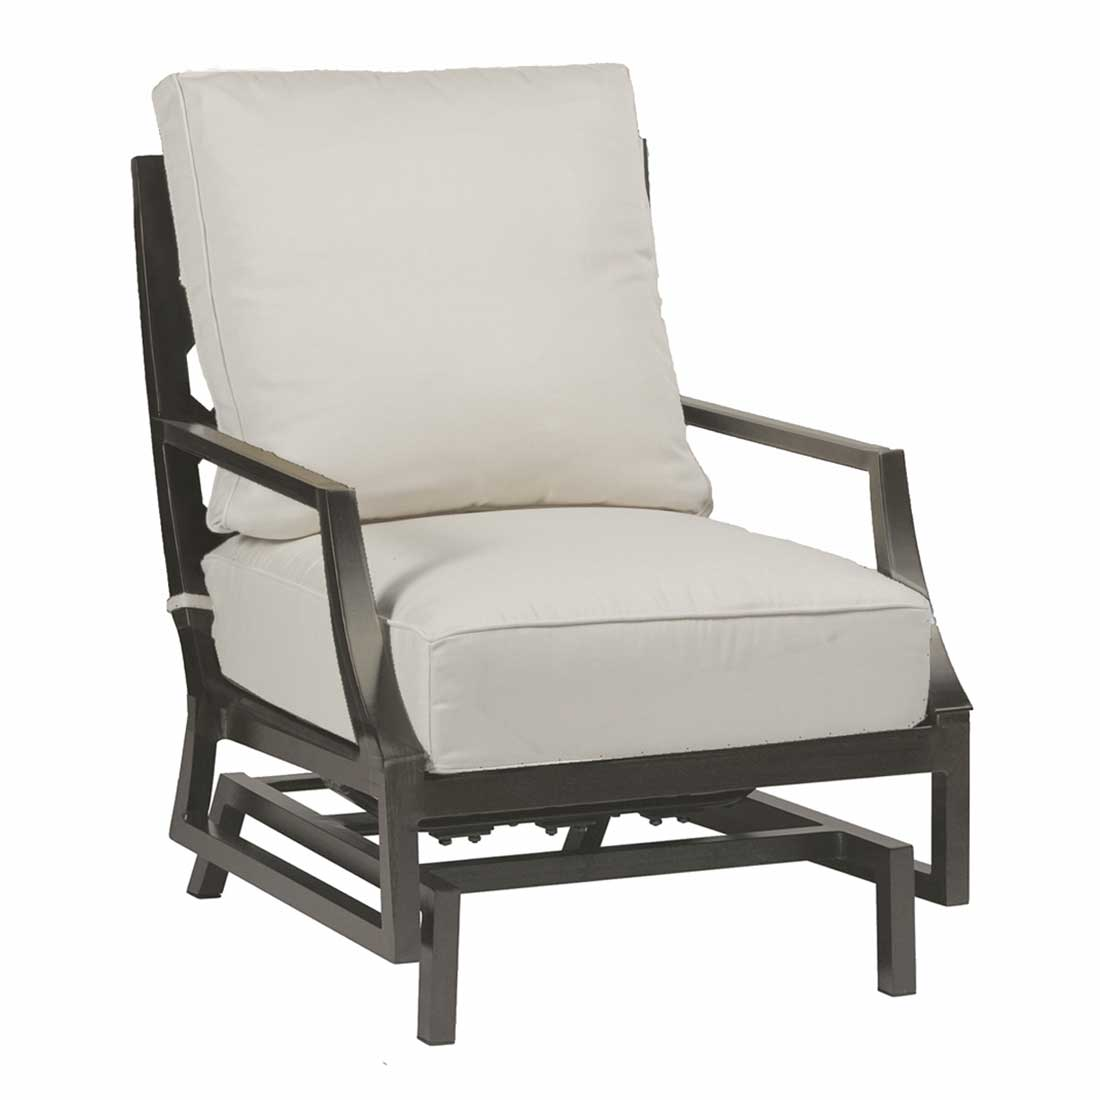 Beach lounge chair png - Lattice Spring Lounge